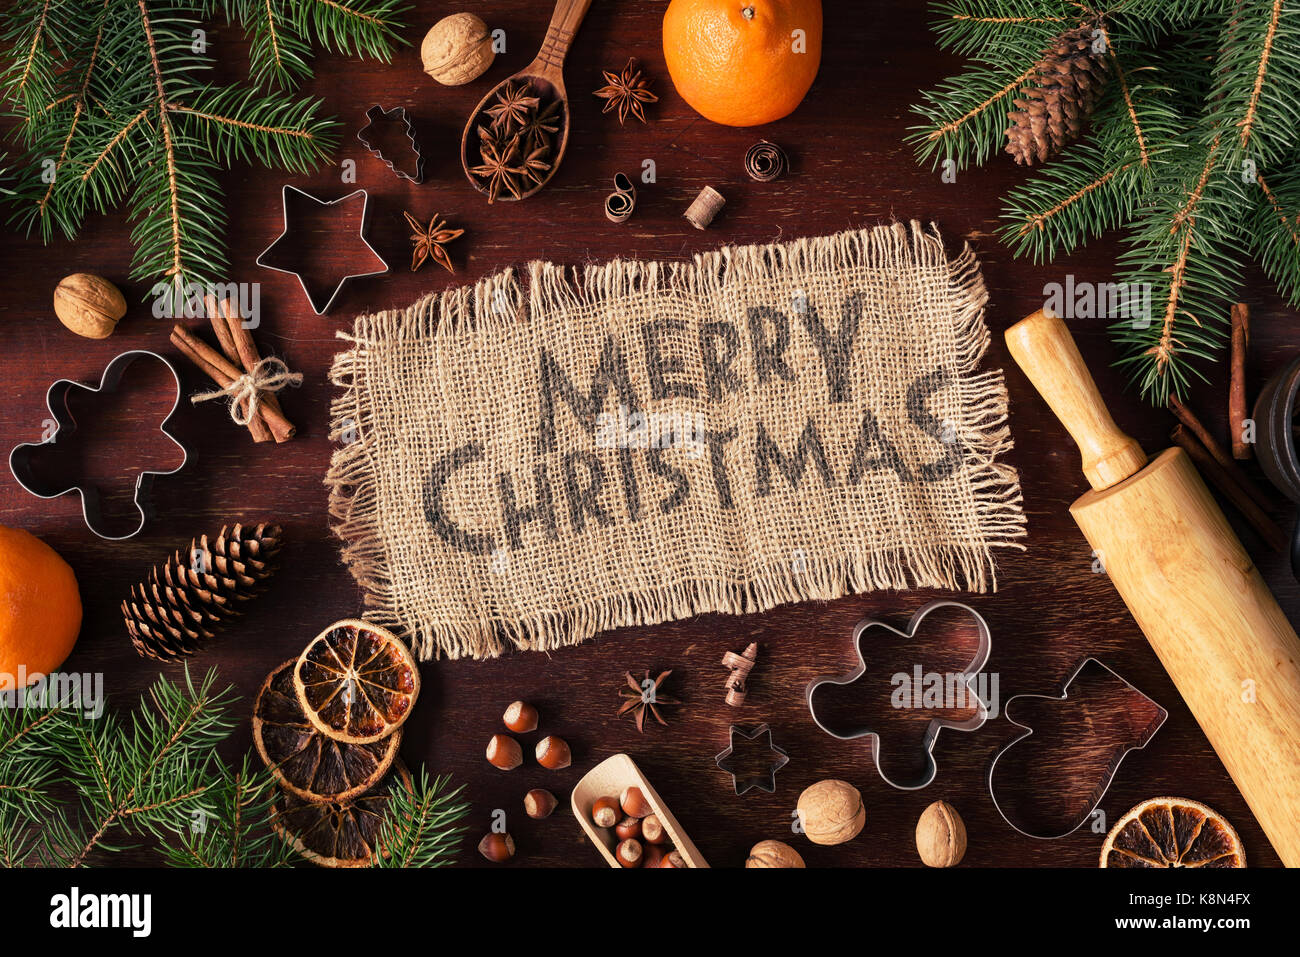 Merry Christmas greeting background with gingerbread cookies, spices, Christmas tree, oranges, nuts and Christmas - Stock Image